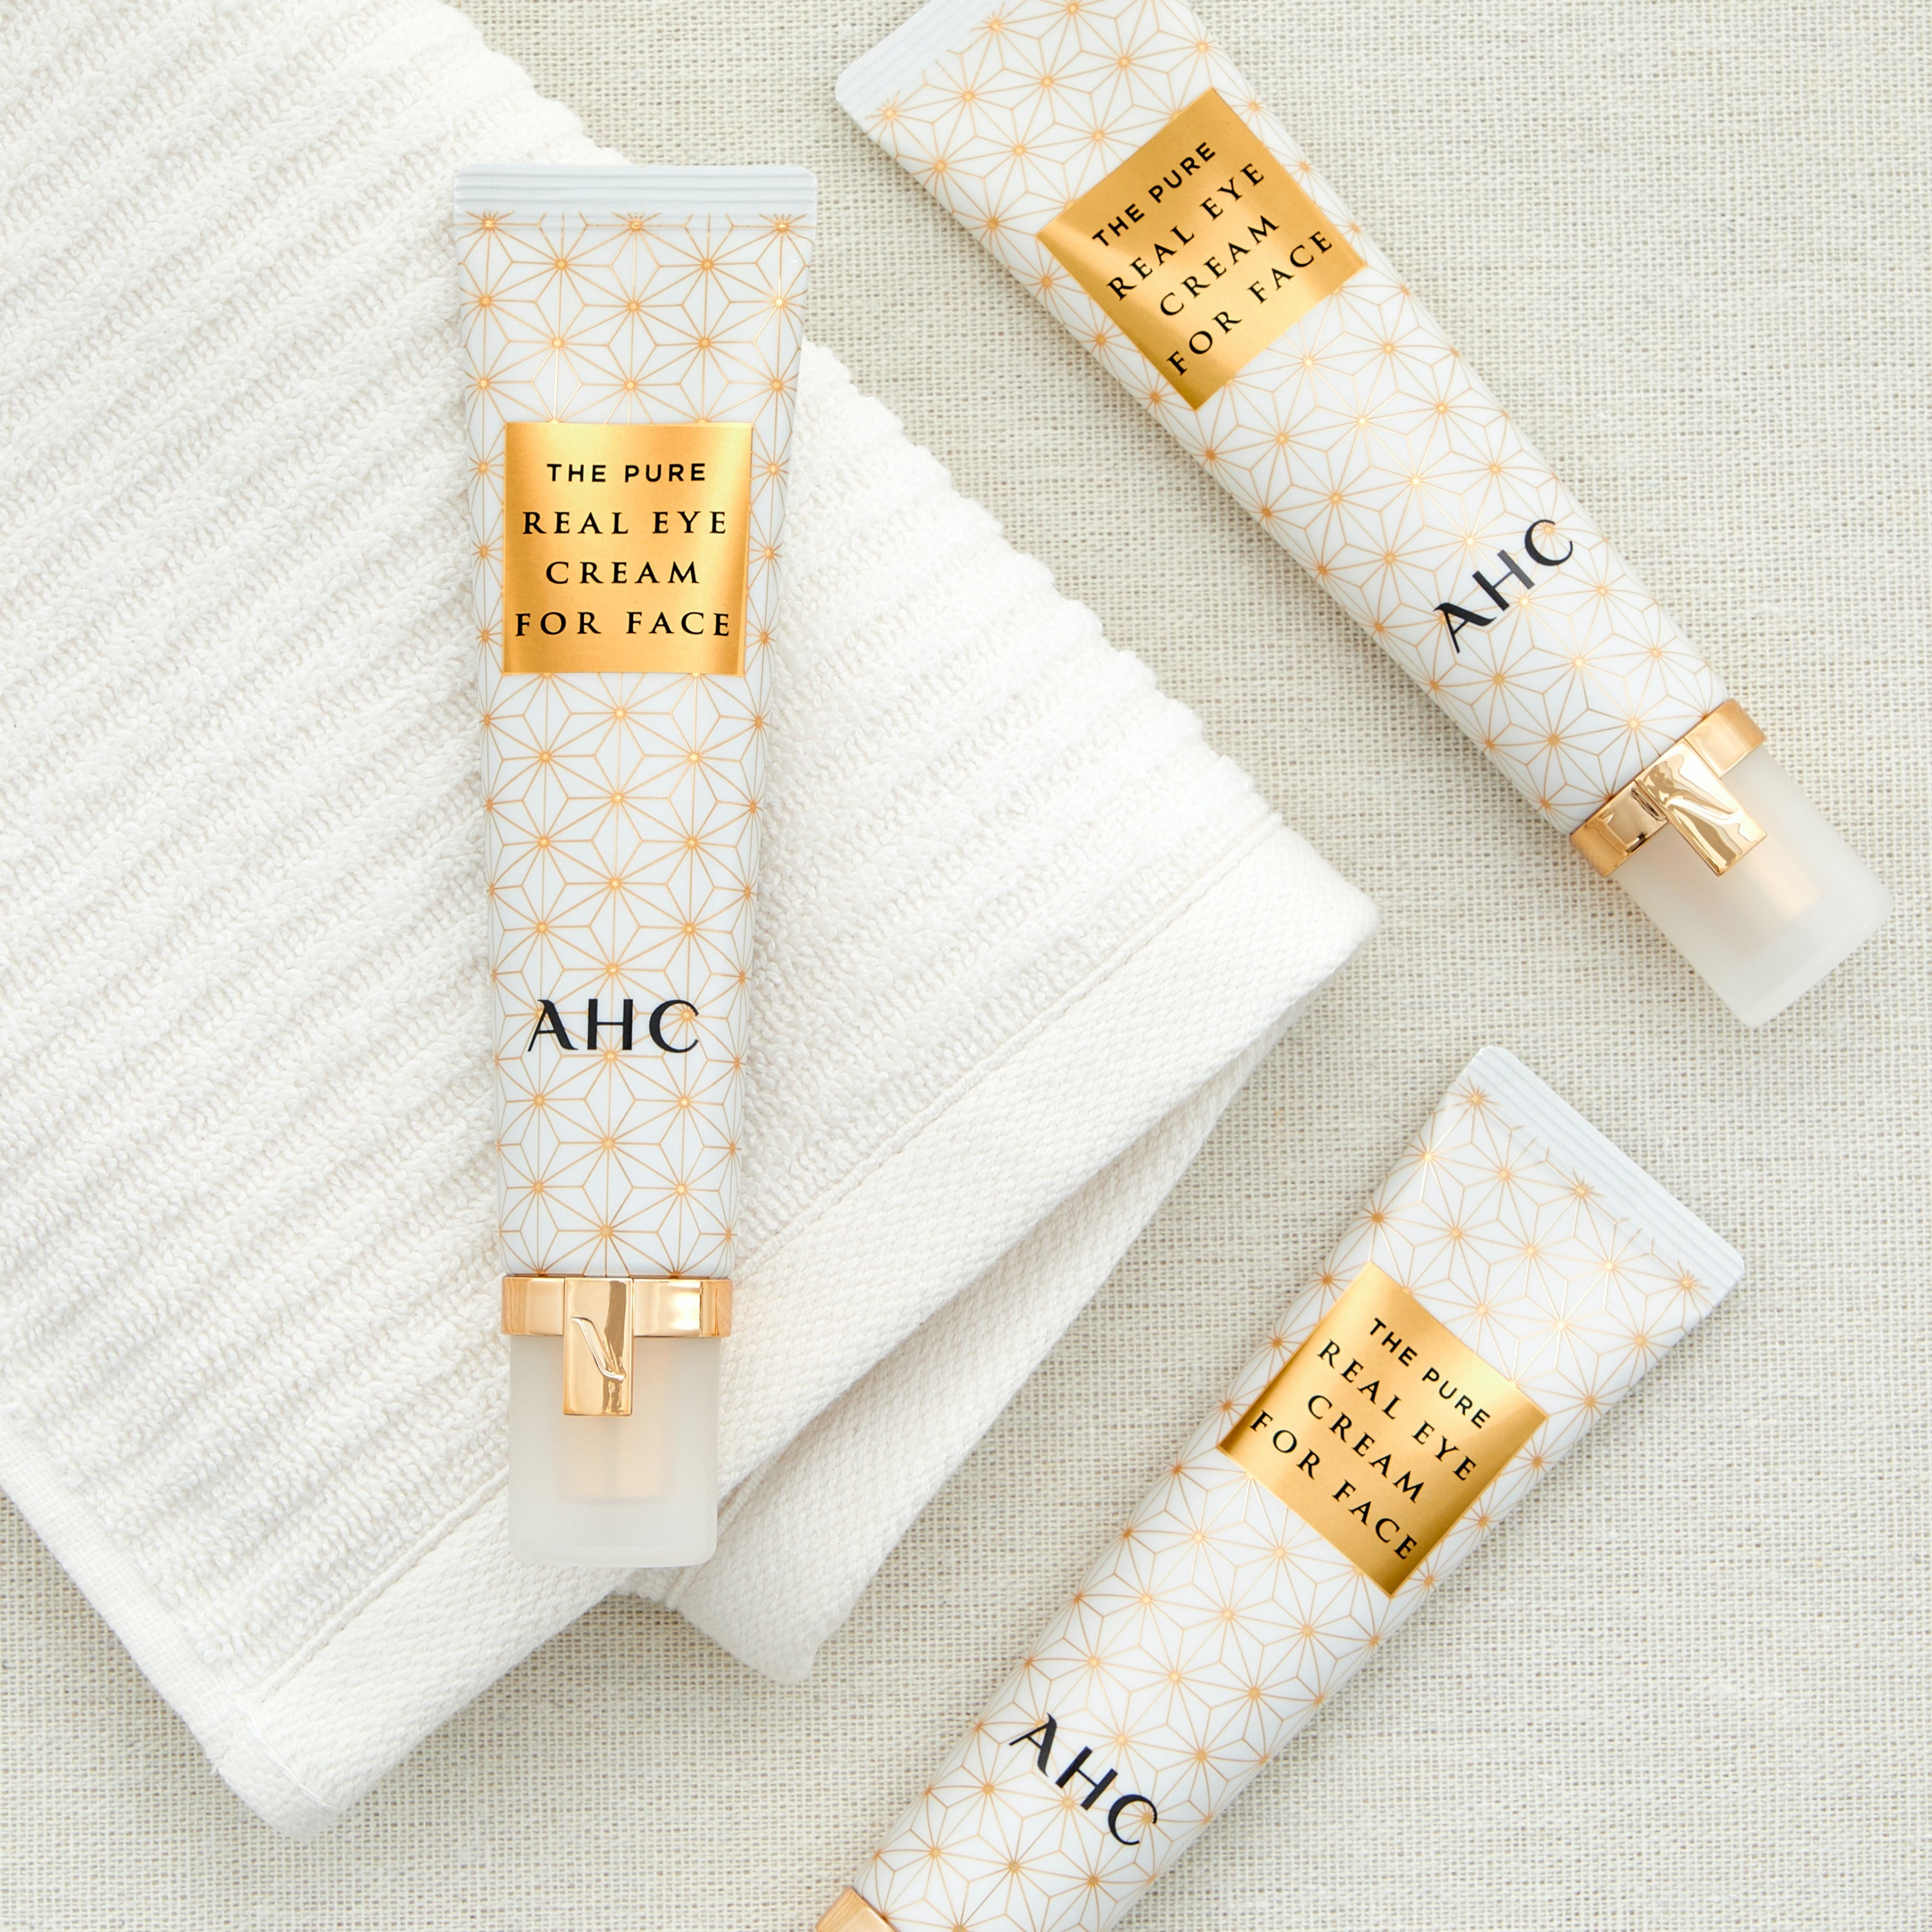 AHC the pure real eye cream for Face pack shot with a white background